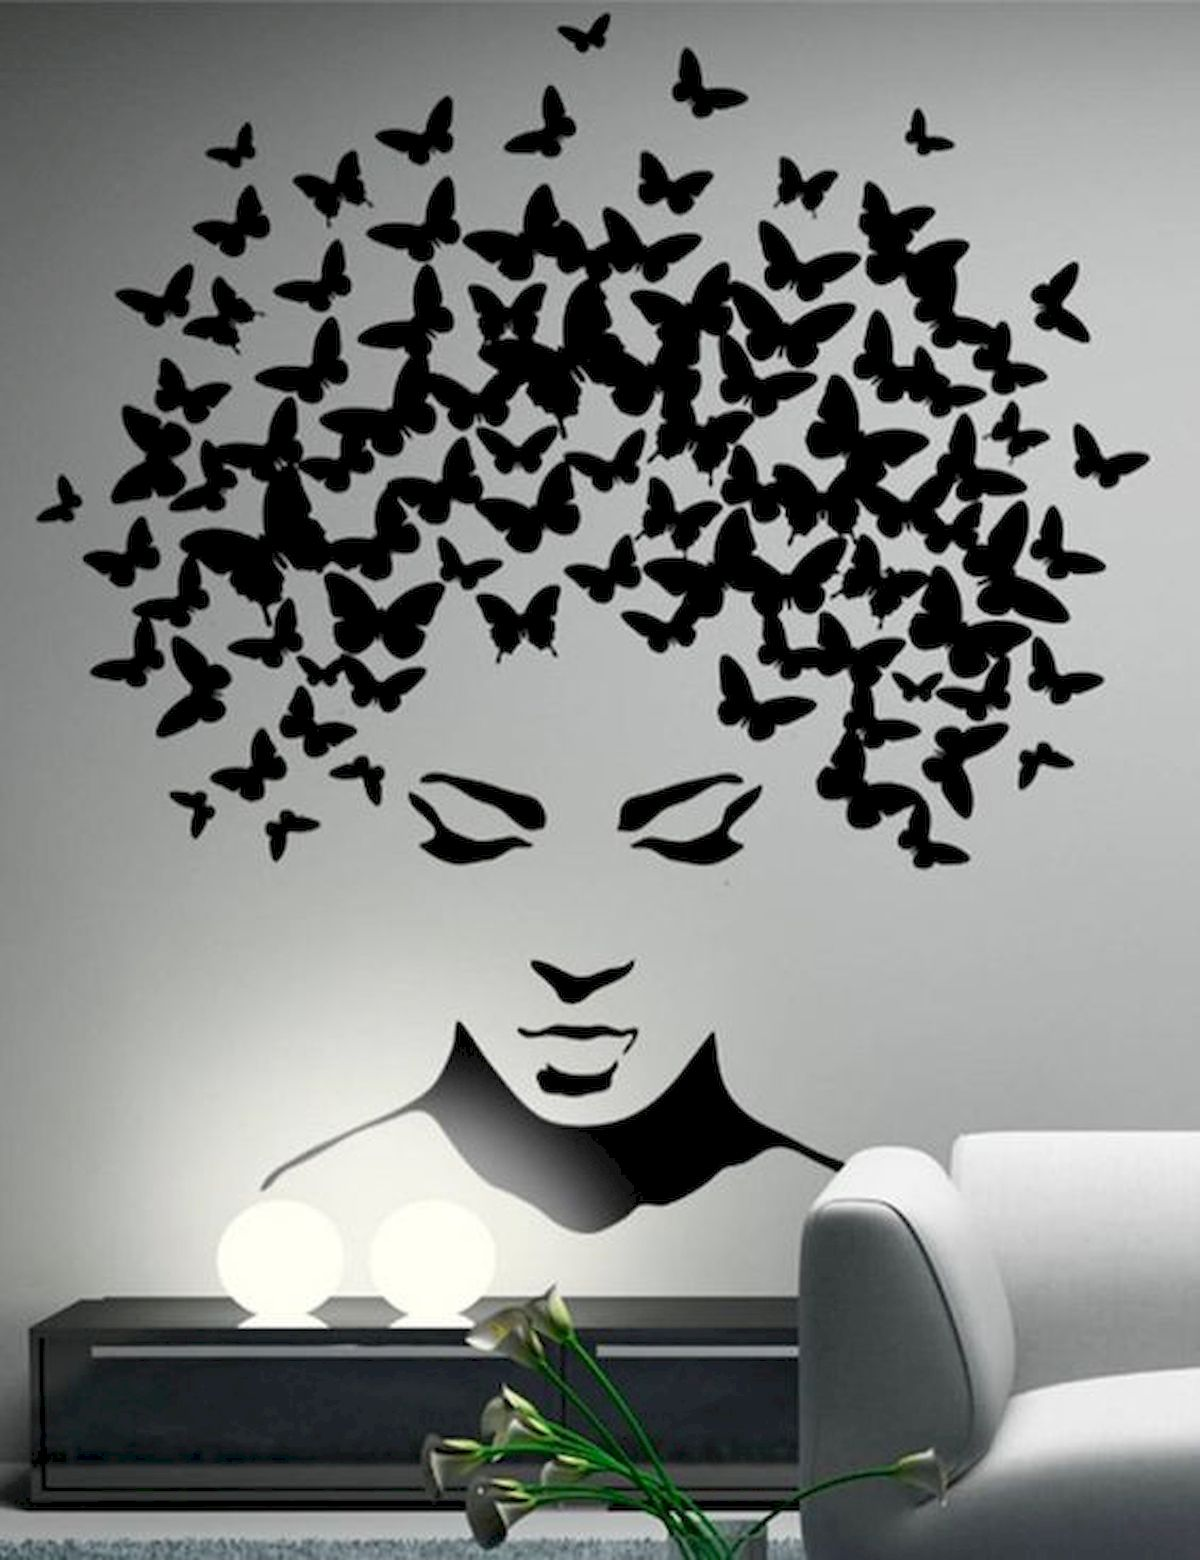 44 Easy But Awesome DIY Wall Painting Ideas To Decorate Your Home (16)